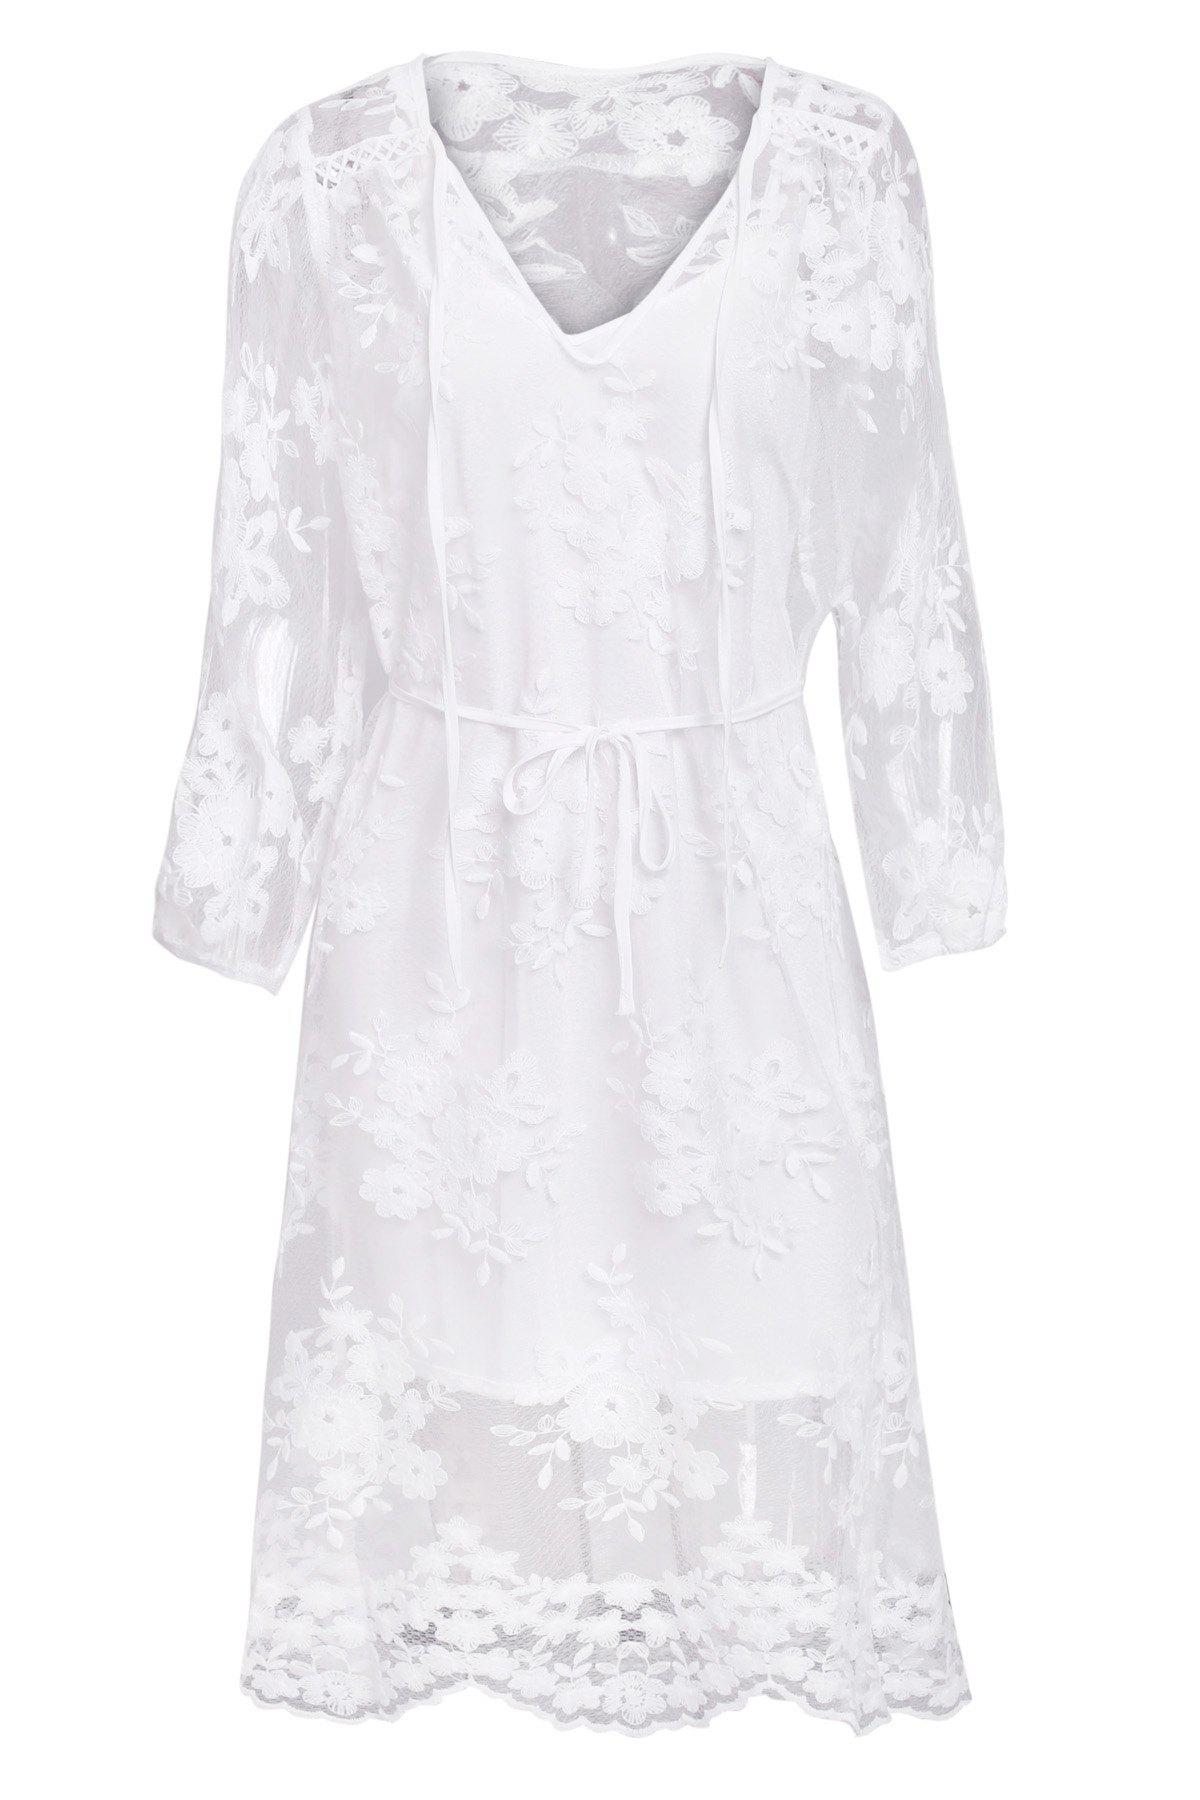 Sweet Style Solid Color Lace See-Through Long Sleeve Dress For Women - WHITE S